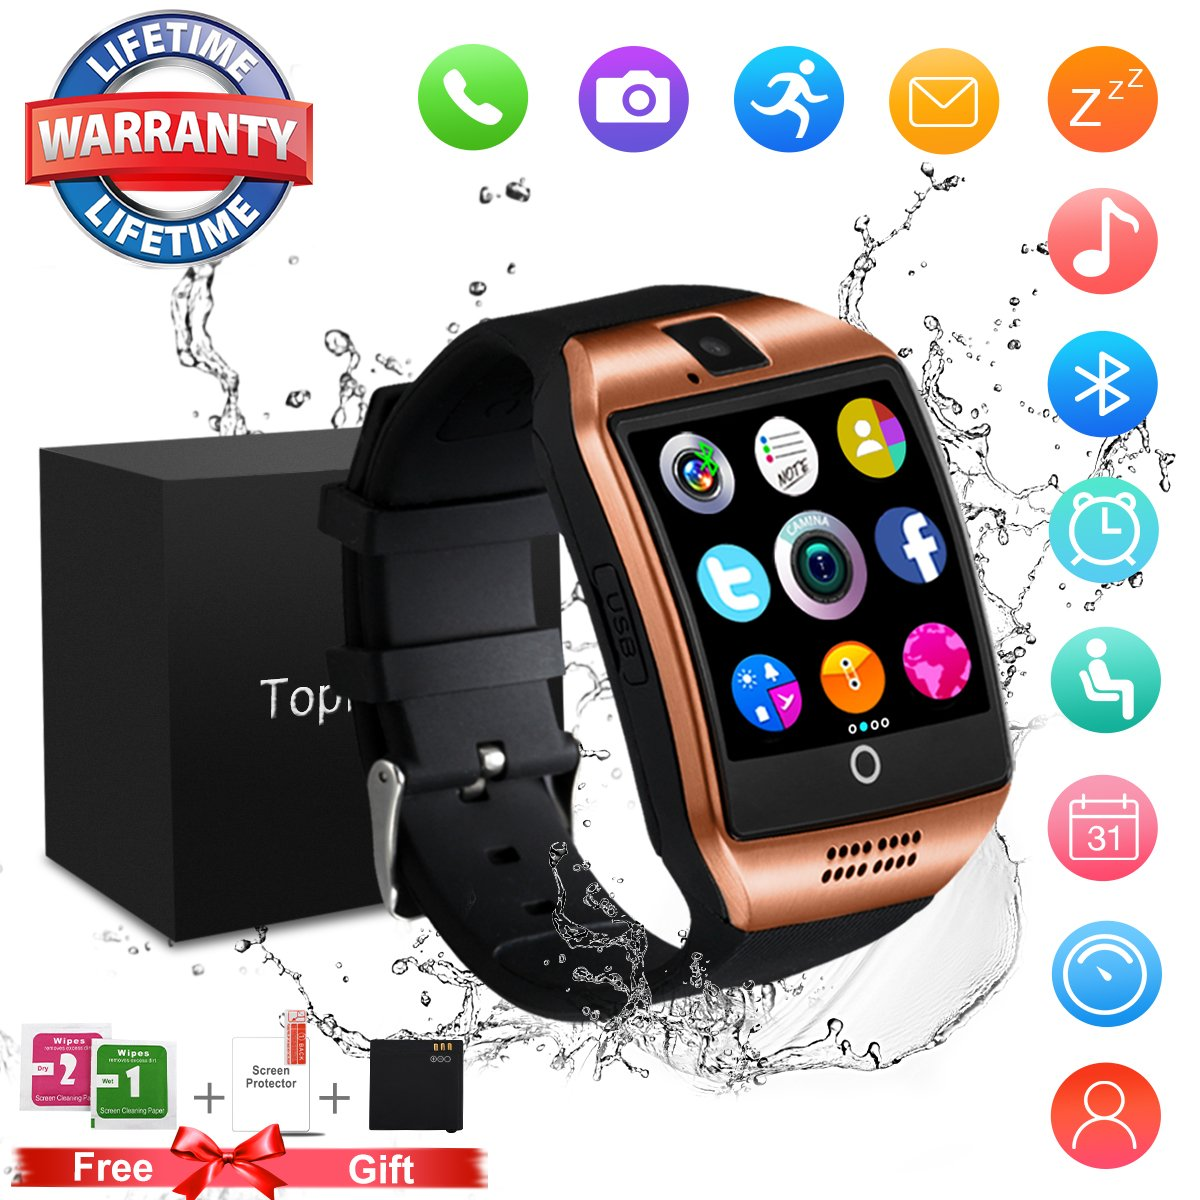 Topffy Smart Watch,Bluetooth Smart Watch Touchscreen With Camera,Waterproof Touch Screen Cell Phone Smartwatch Sport with SIM Card Slot for Android Samsung IOS iPhone 8 X Men Women (Watch-X6-Black)